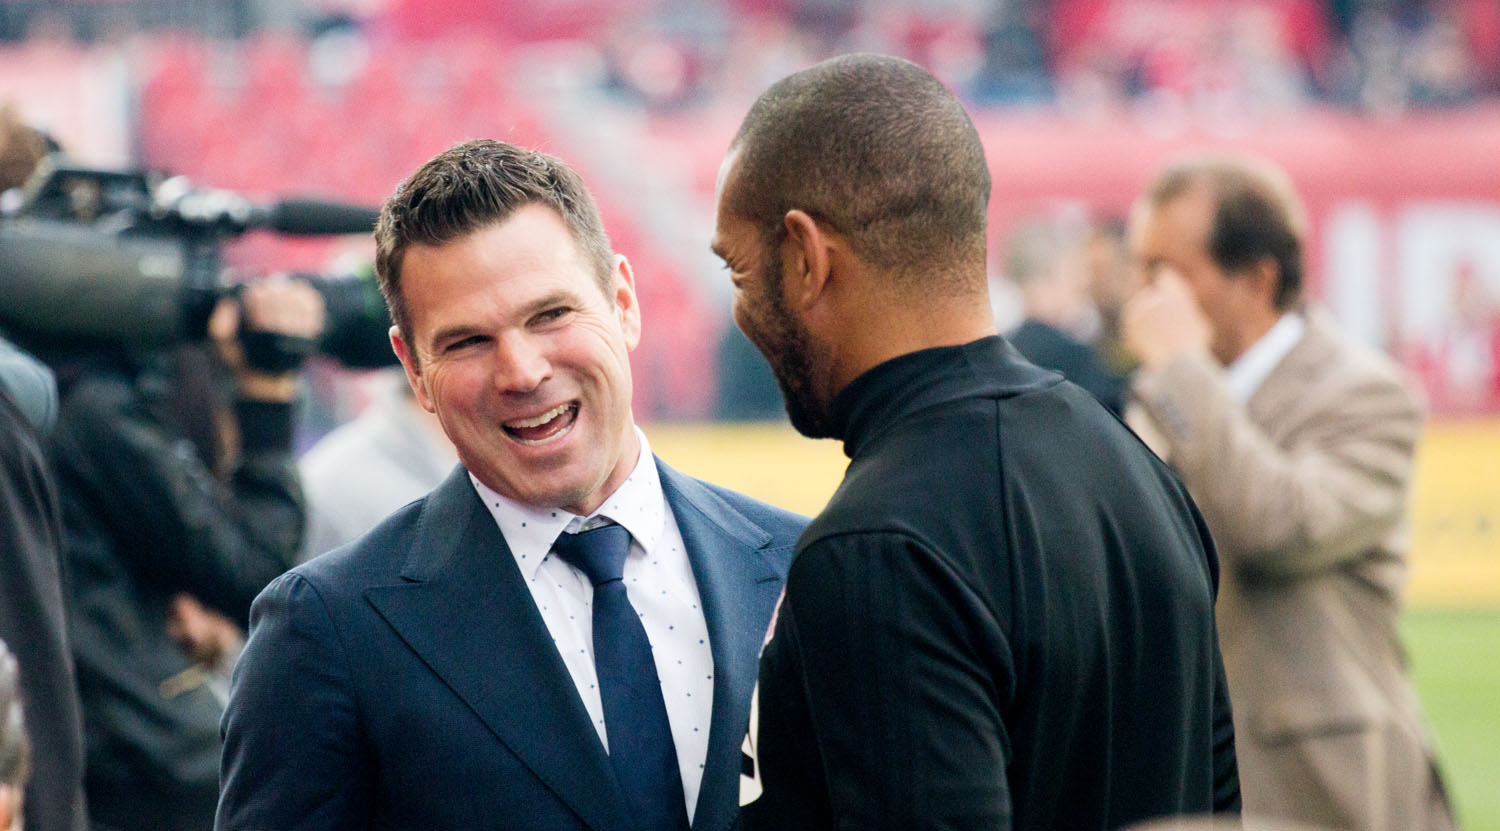 Greg Vanney having a discussion with Toronto FC coaching staff during the pregame warm ups at BMO FIeld. Image by Dennis Marciniak of denMAR Media.